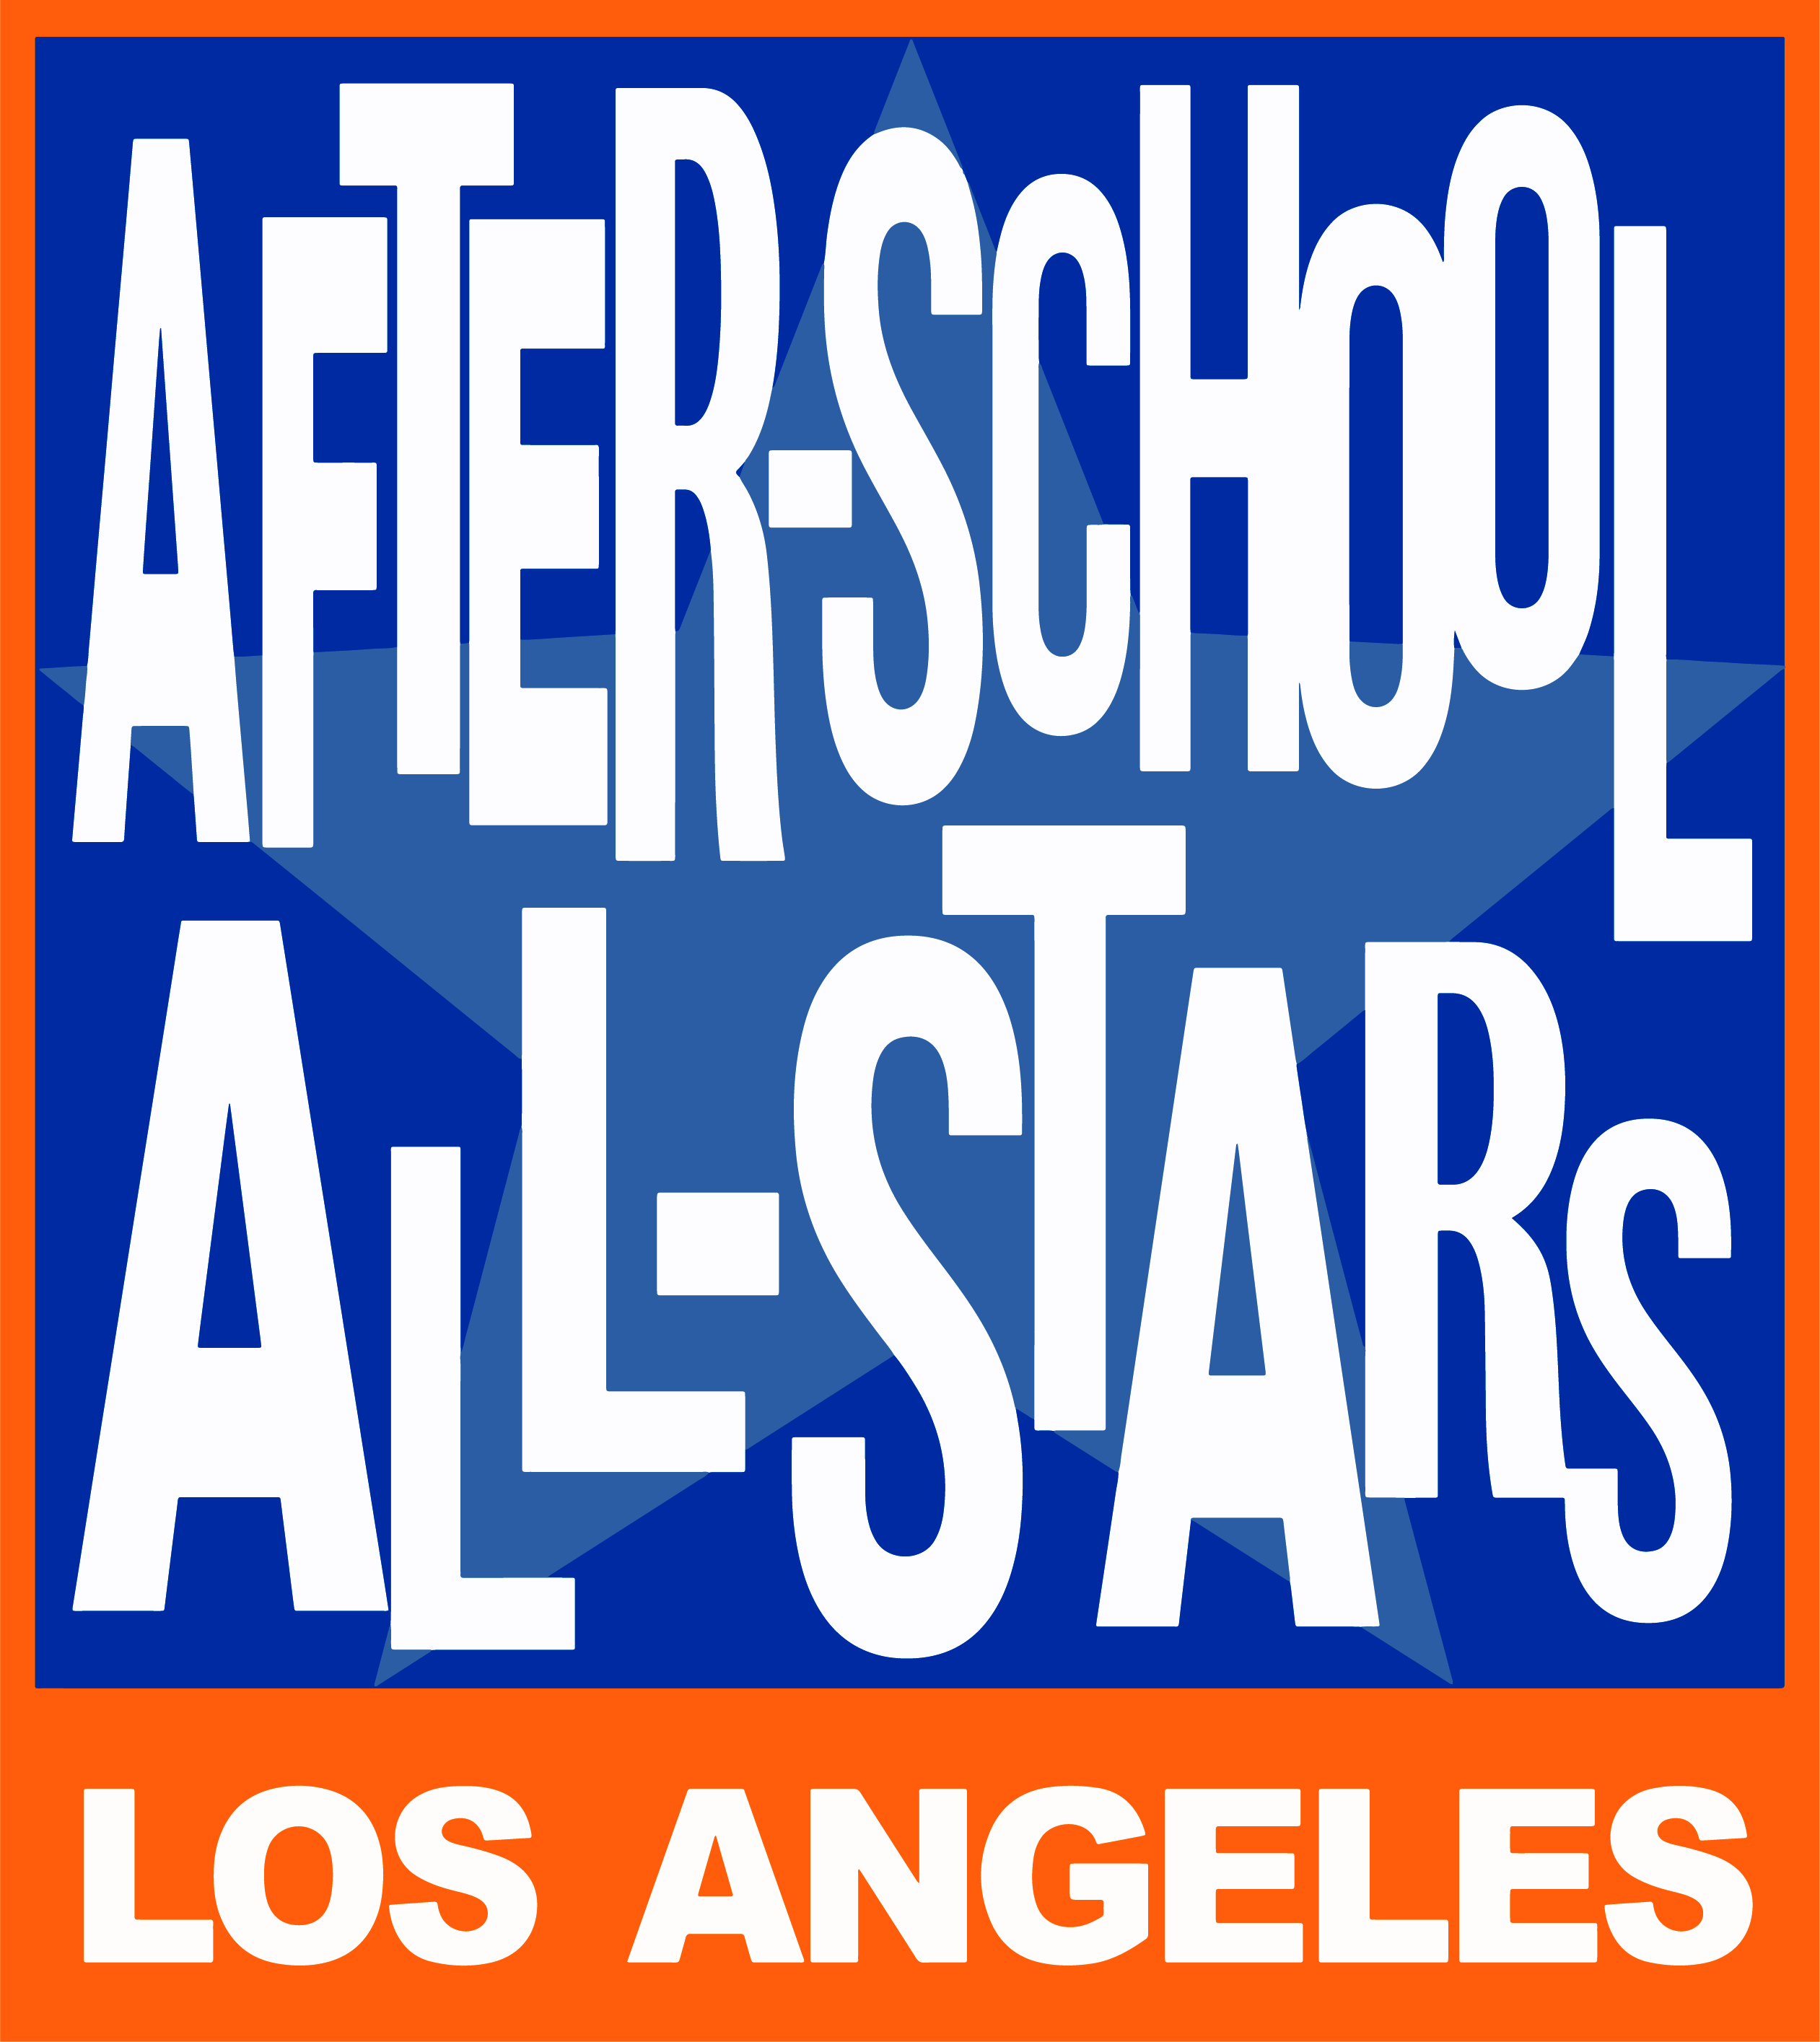 LA After School All Stars